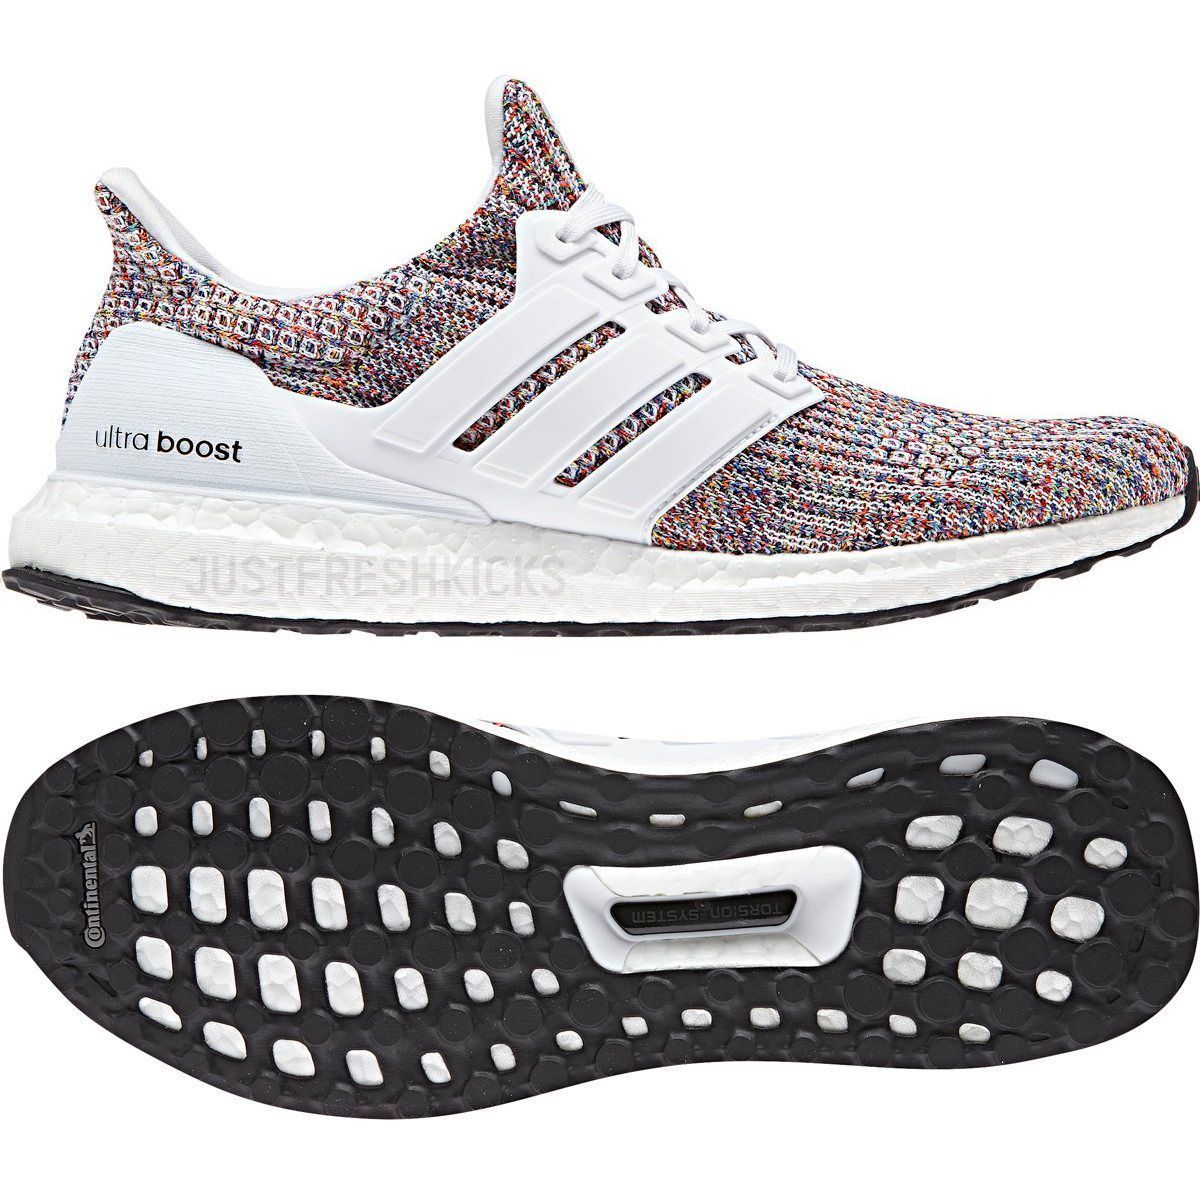 ADIDAS ULTRA BOOST 4.0 Mens 11.5 LTD OREO Cookies & Cream